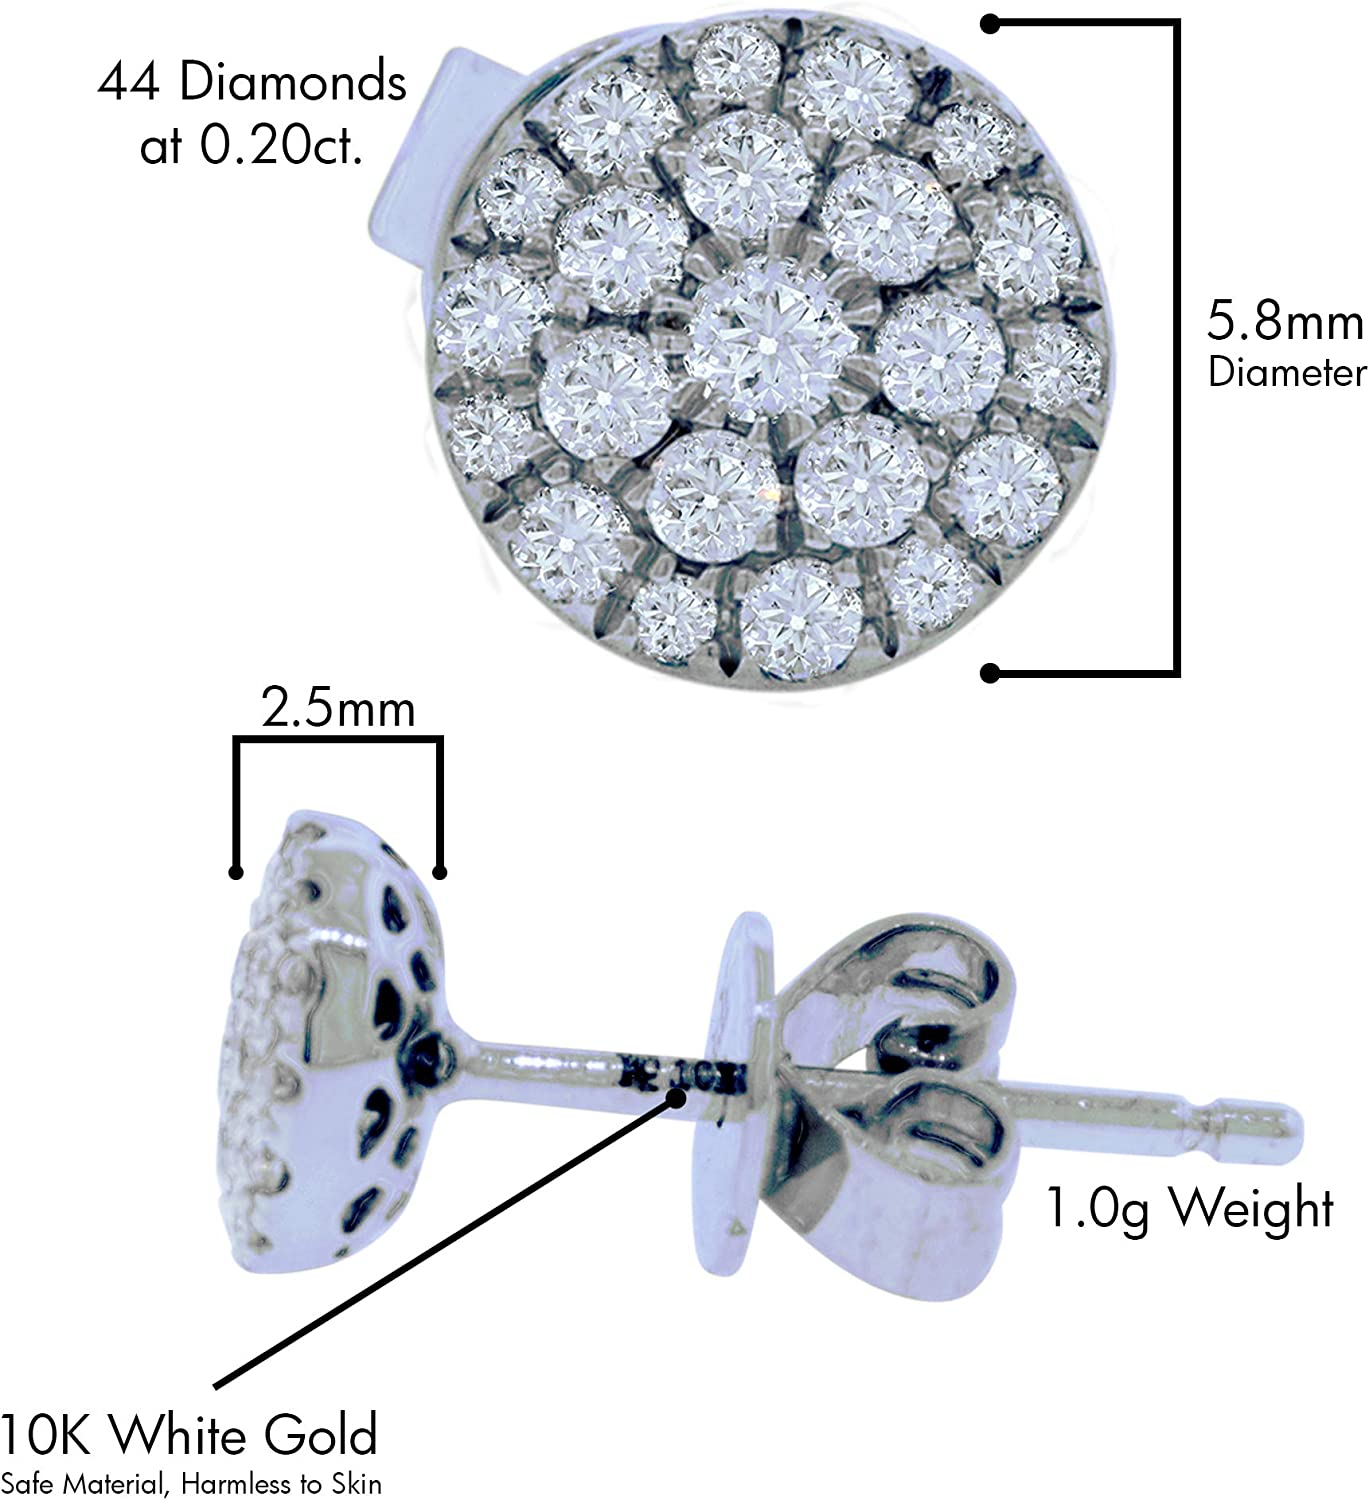 10K White Gold Natural Diamond Cluster Stud Earrings with 0.20cttw Round Cut DIamonds (J Color, SI Clarity)